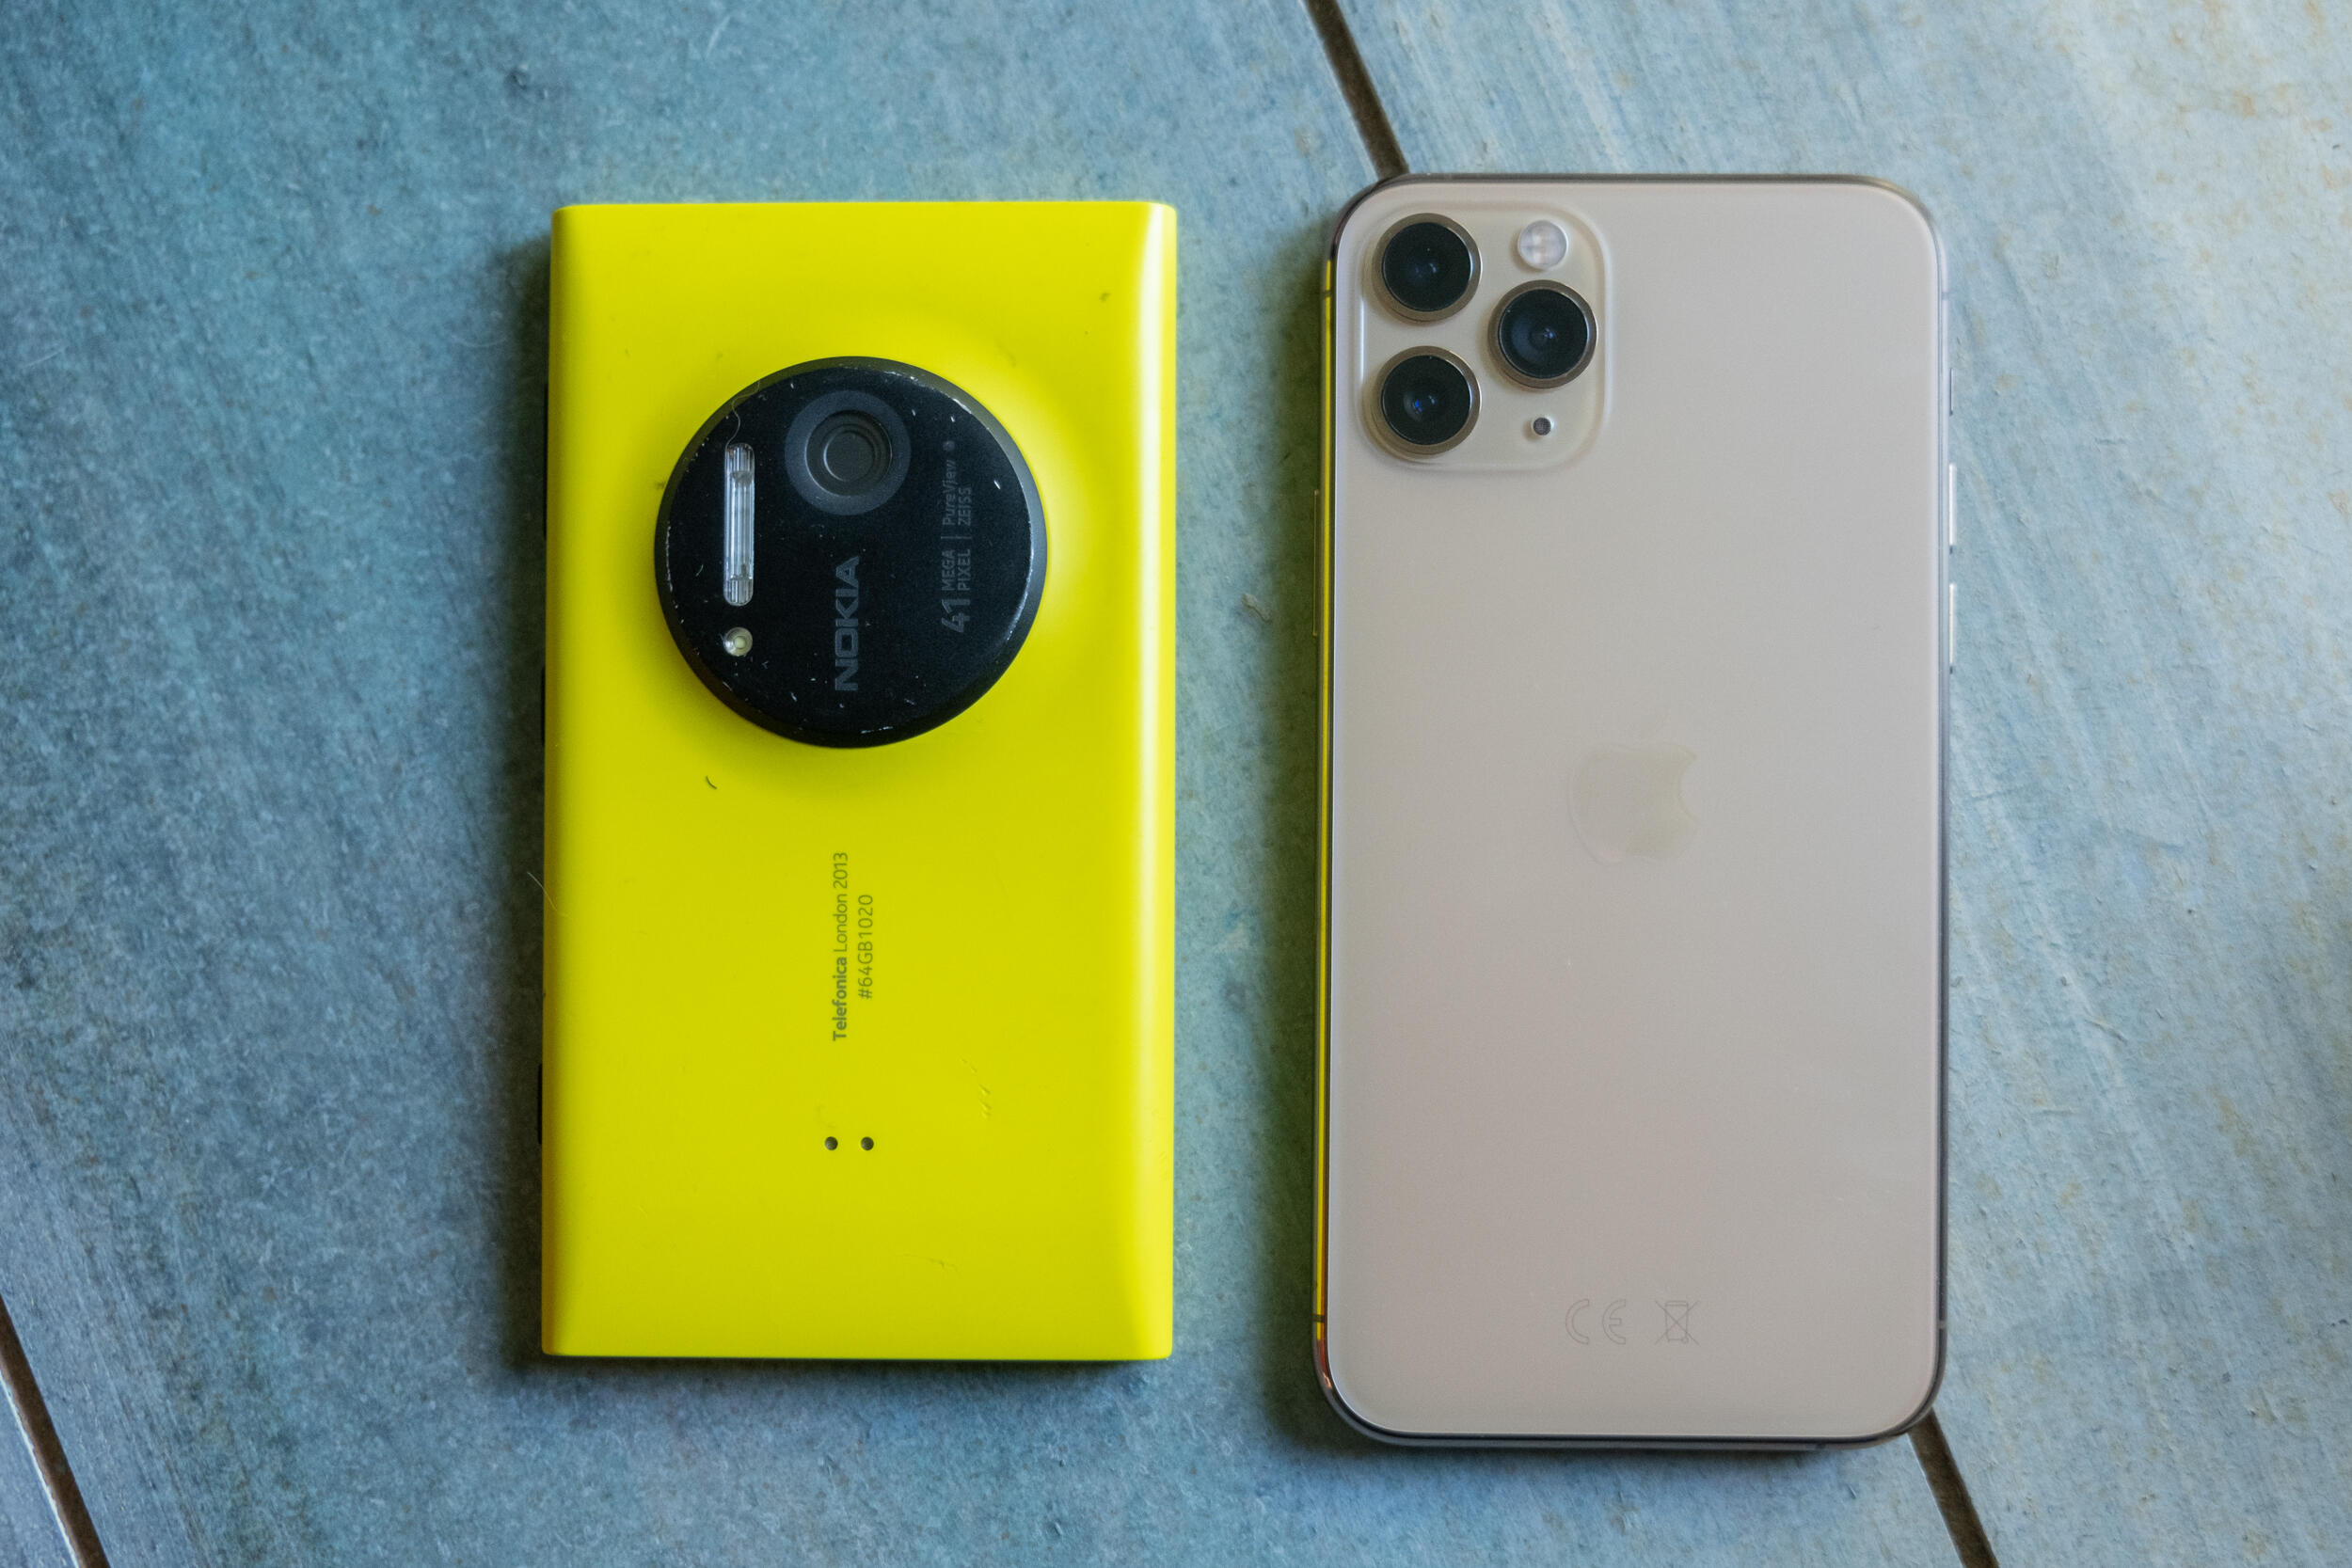 iPhone 11 Pro's camera compared with this 7-year-old phone is a surprisingly close match